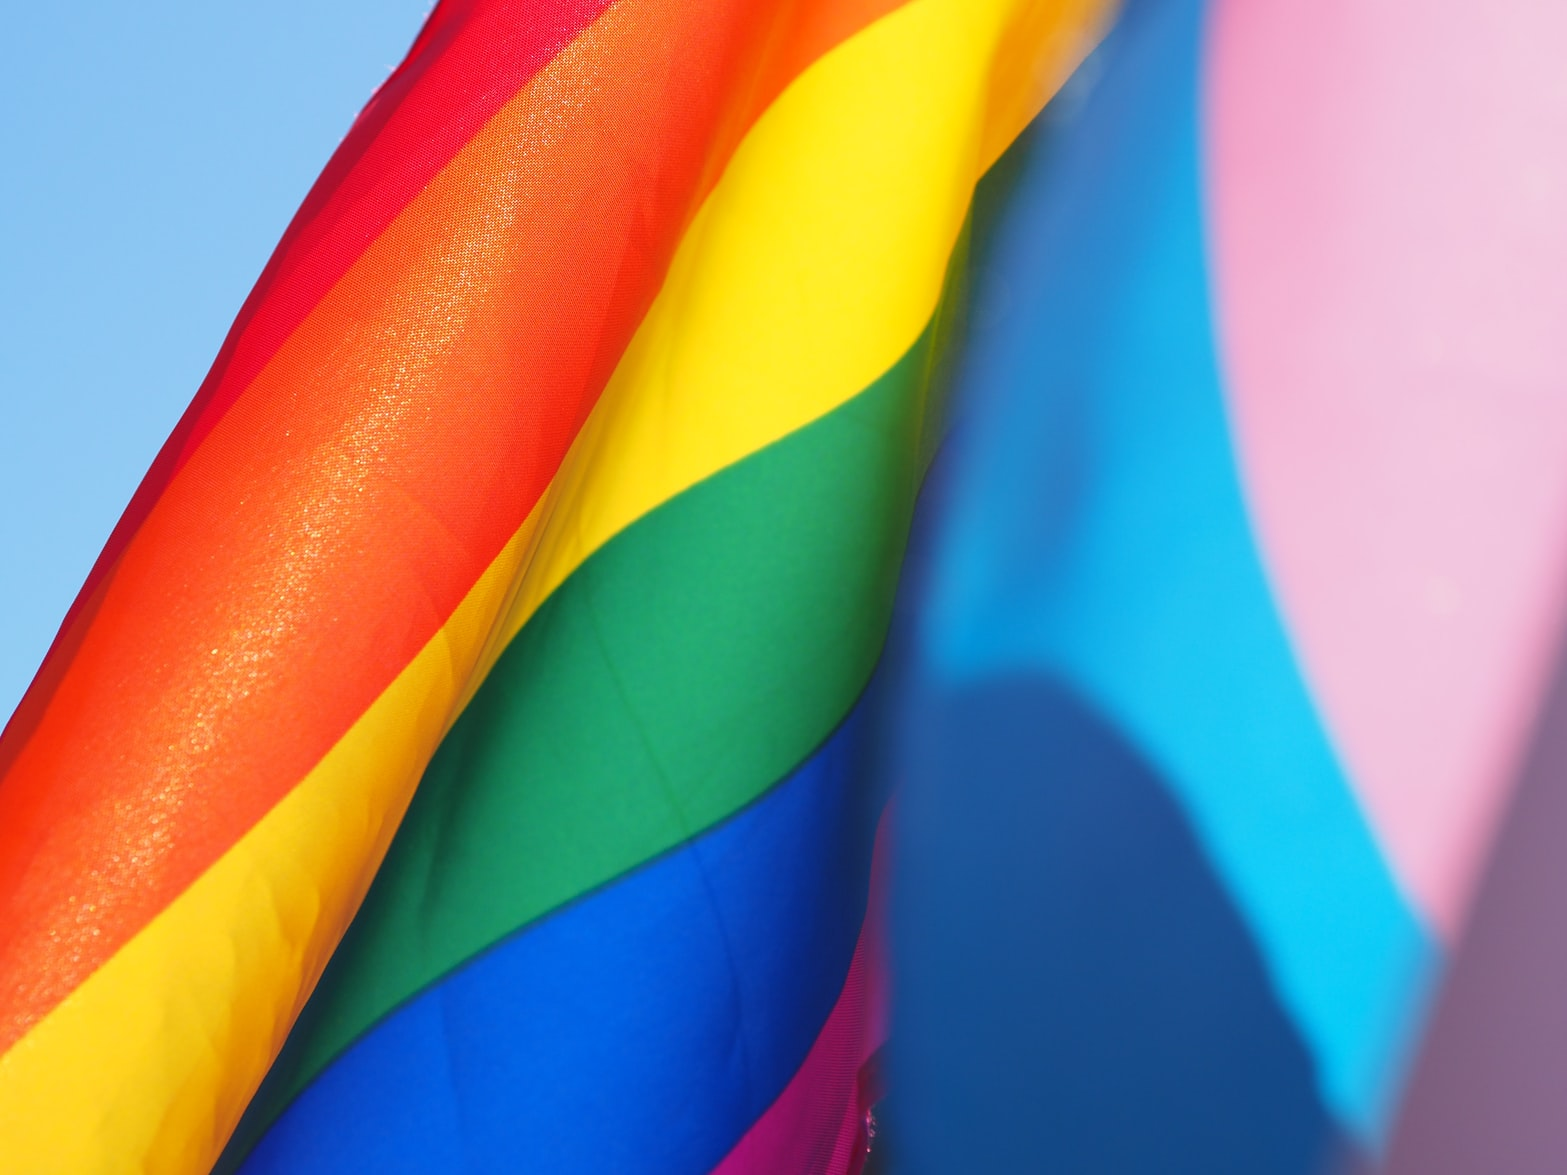 Joint Statement On 25th Budapest Pride Festival By Embassies in Hungary